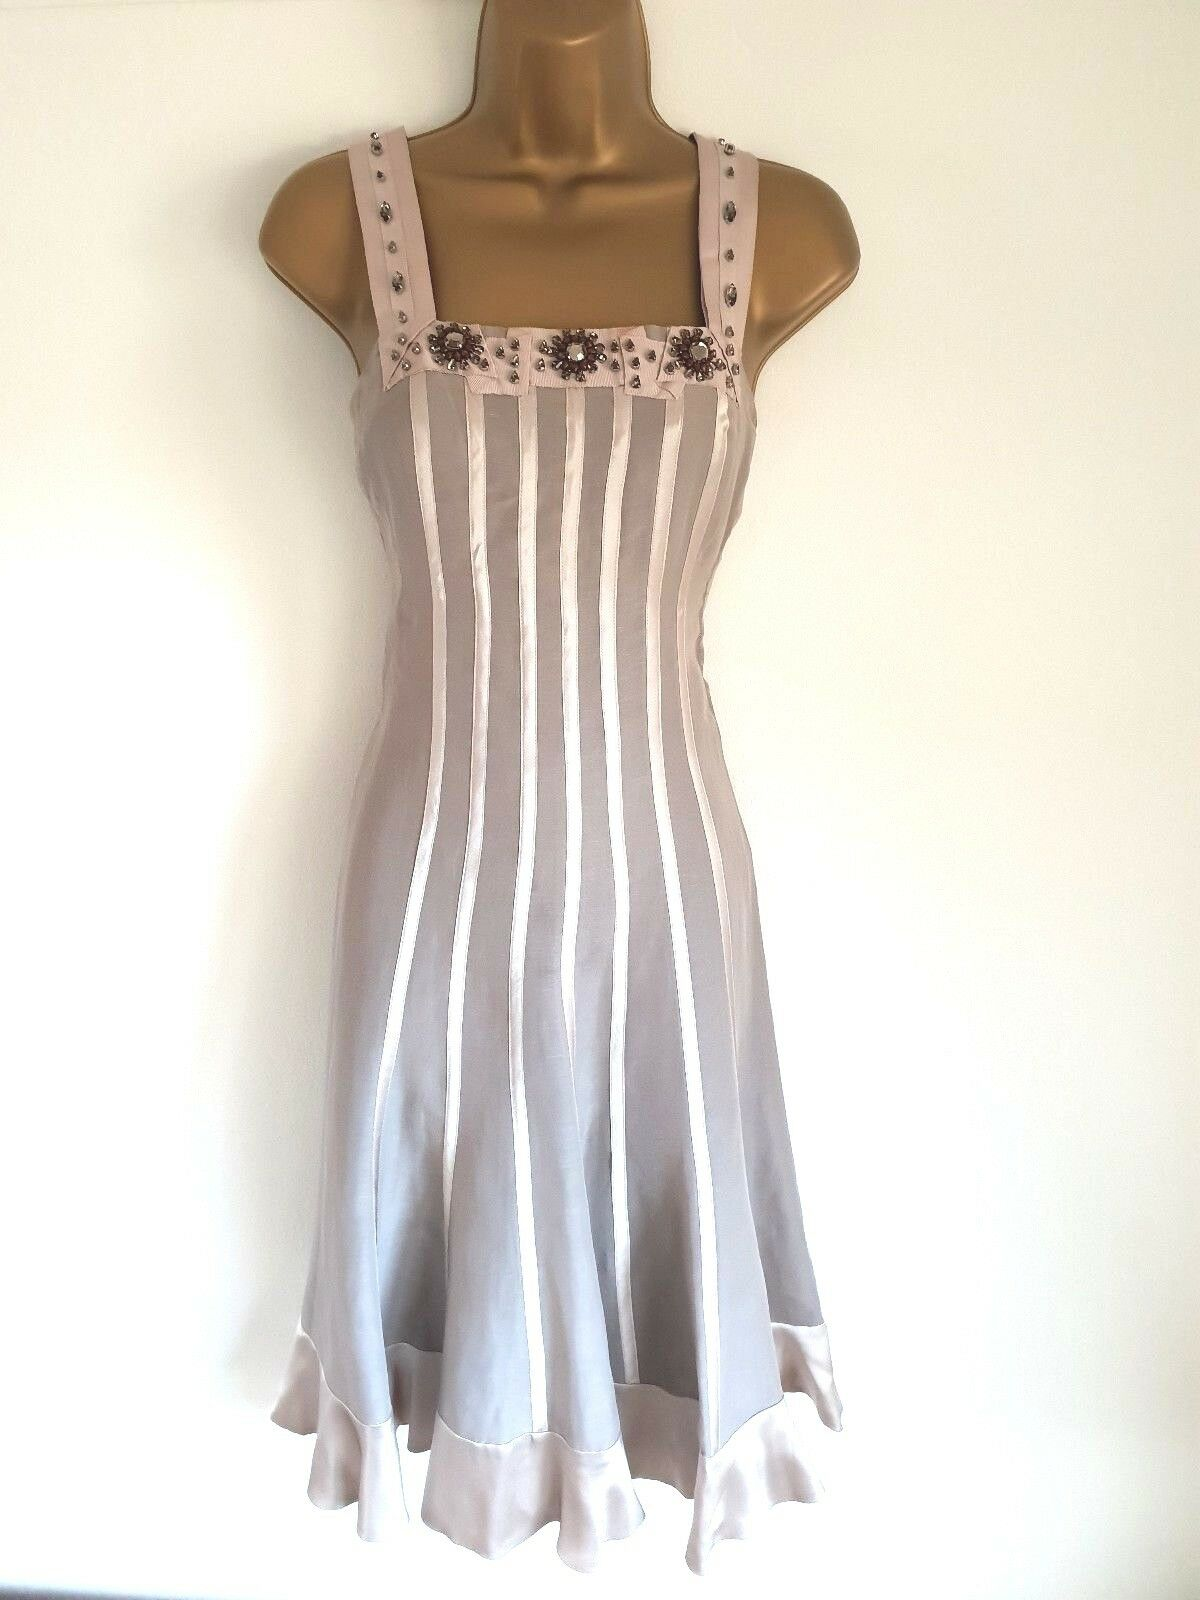 FENN WRIGHT WRIGHT WRIGHT MANSON stunning Taupe  occasion , wedding quest dress size 10 UK f3aed7